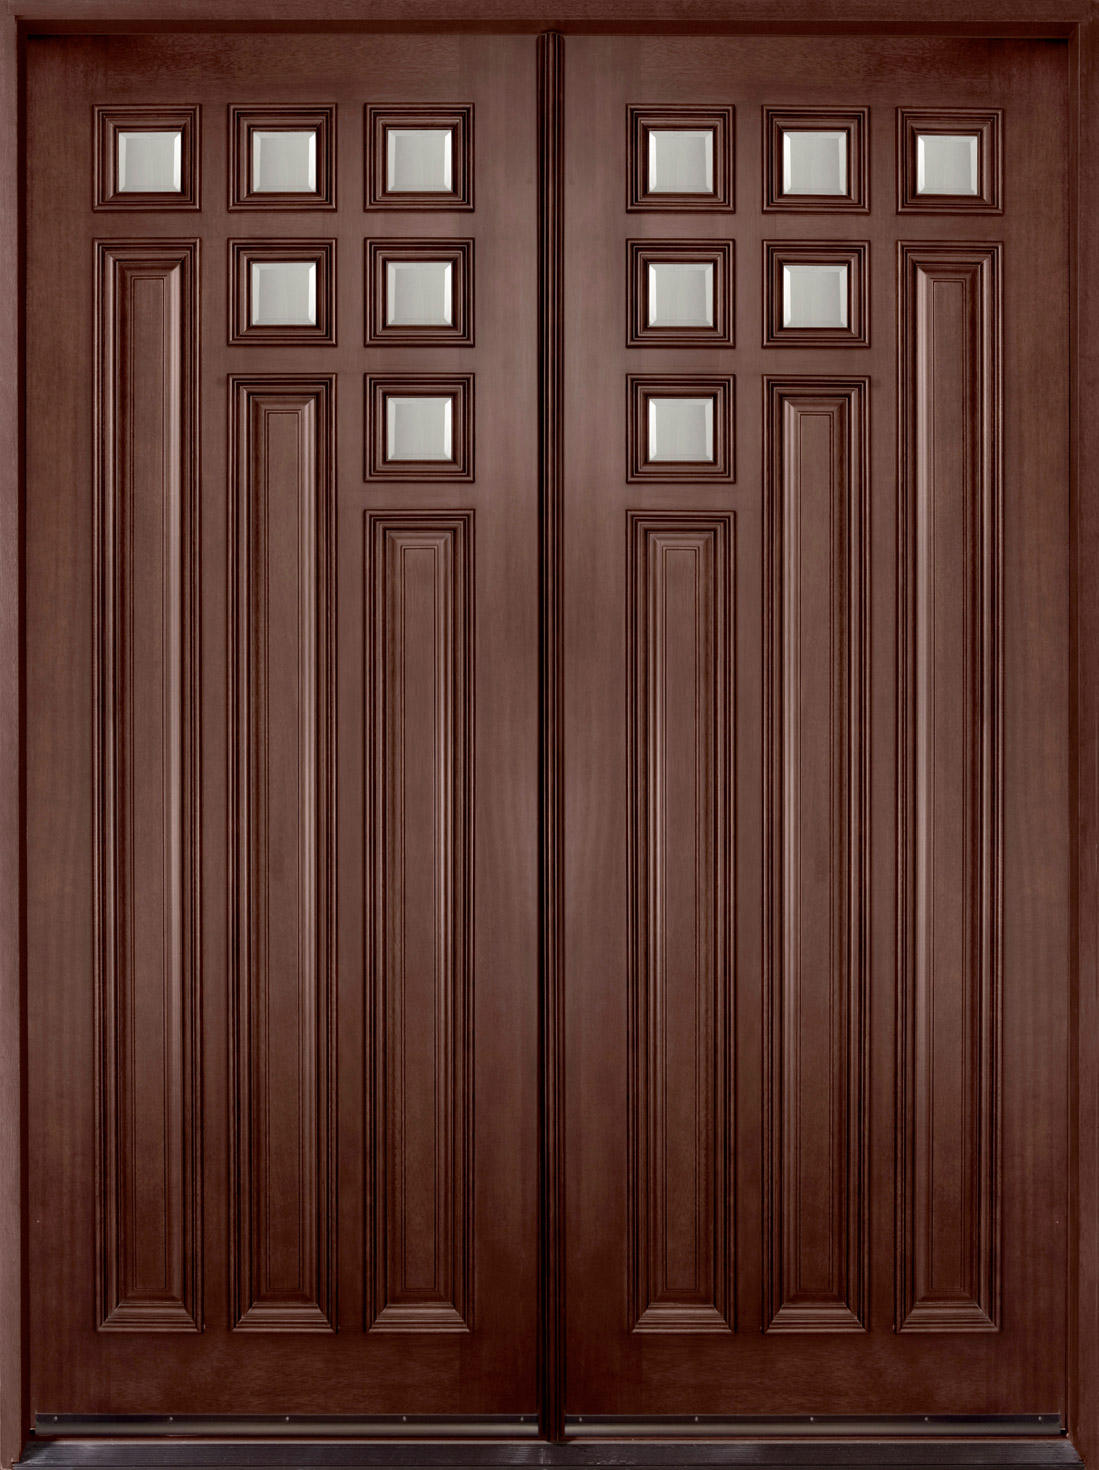 Door PNG Image Without Background 48399 & Door Transparent PNG Image | Web Icons PNG